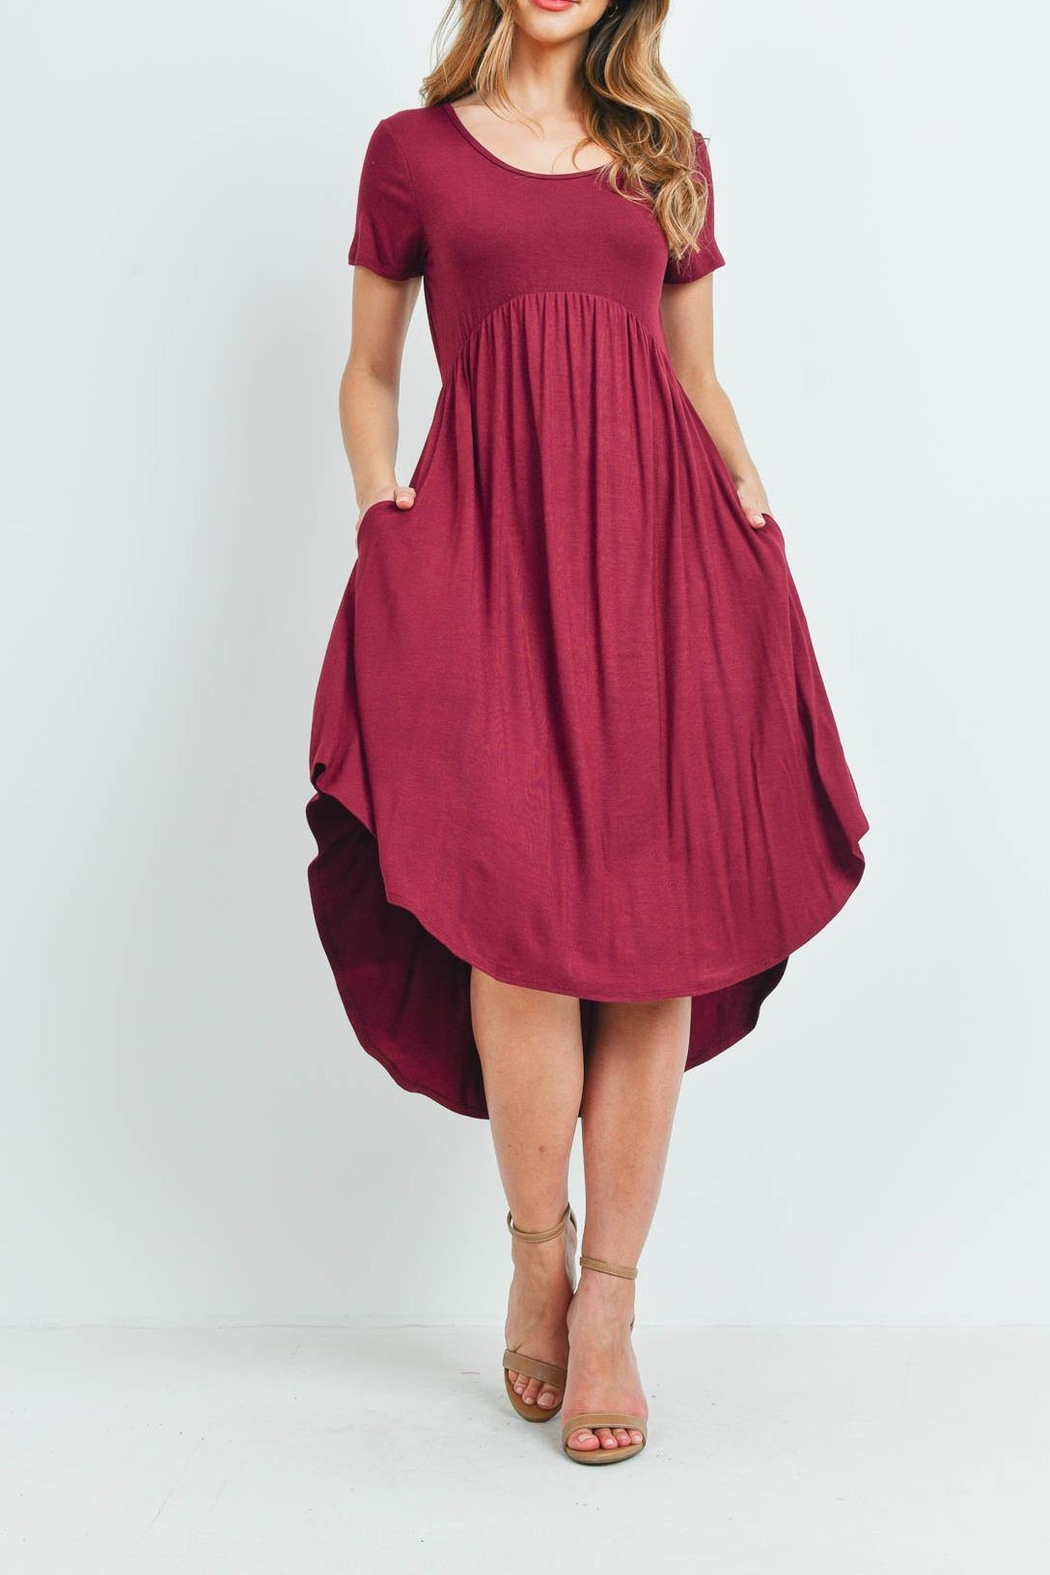 Riah Fashion High-Low-Empire-Pocket-Dress - Front Cropped Image